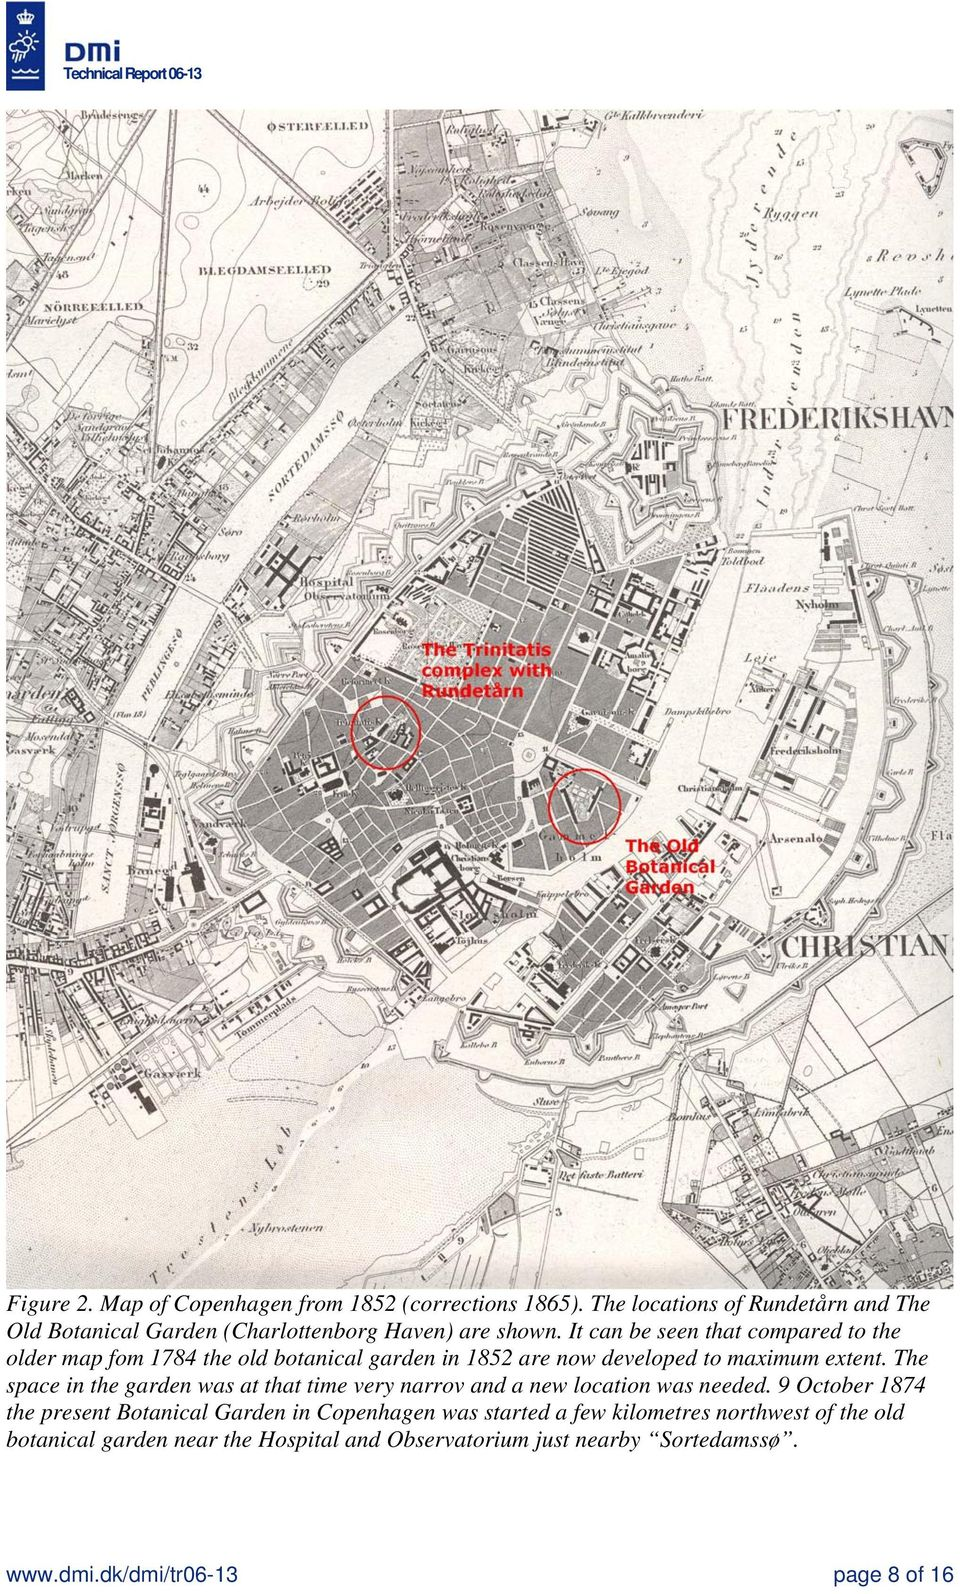 It can be seen that compared to the older map fom 1784 the old botanical garden in 1852 are now developed to maximum extent.